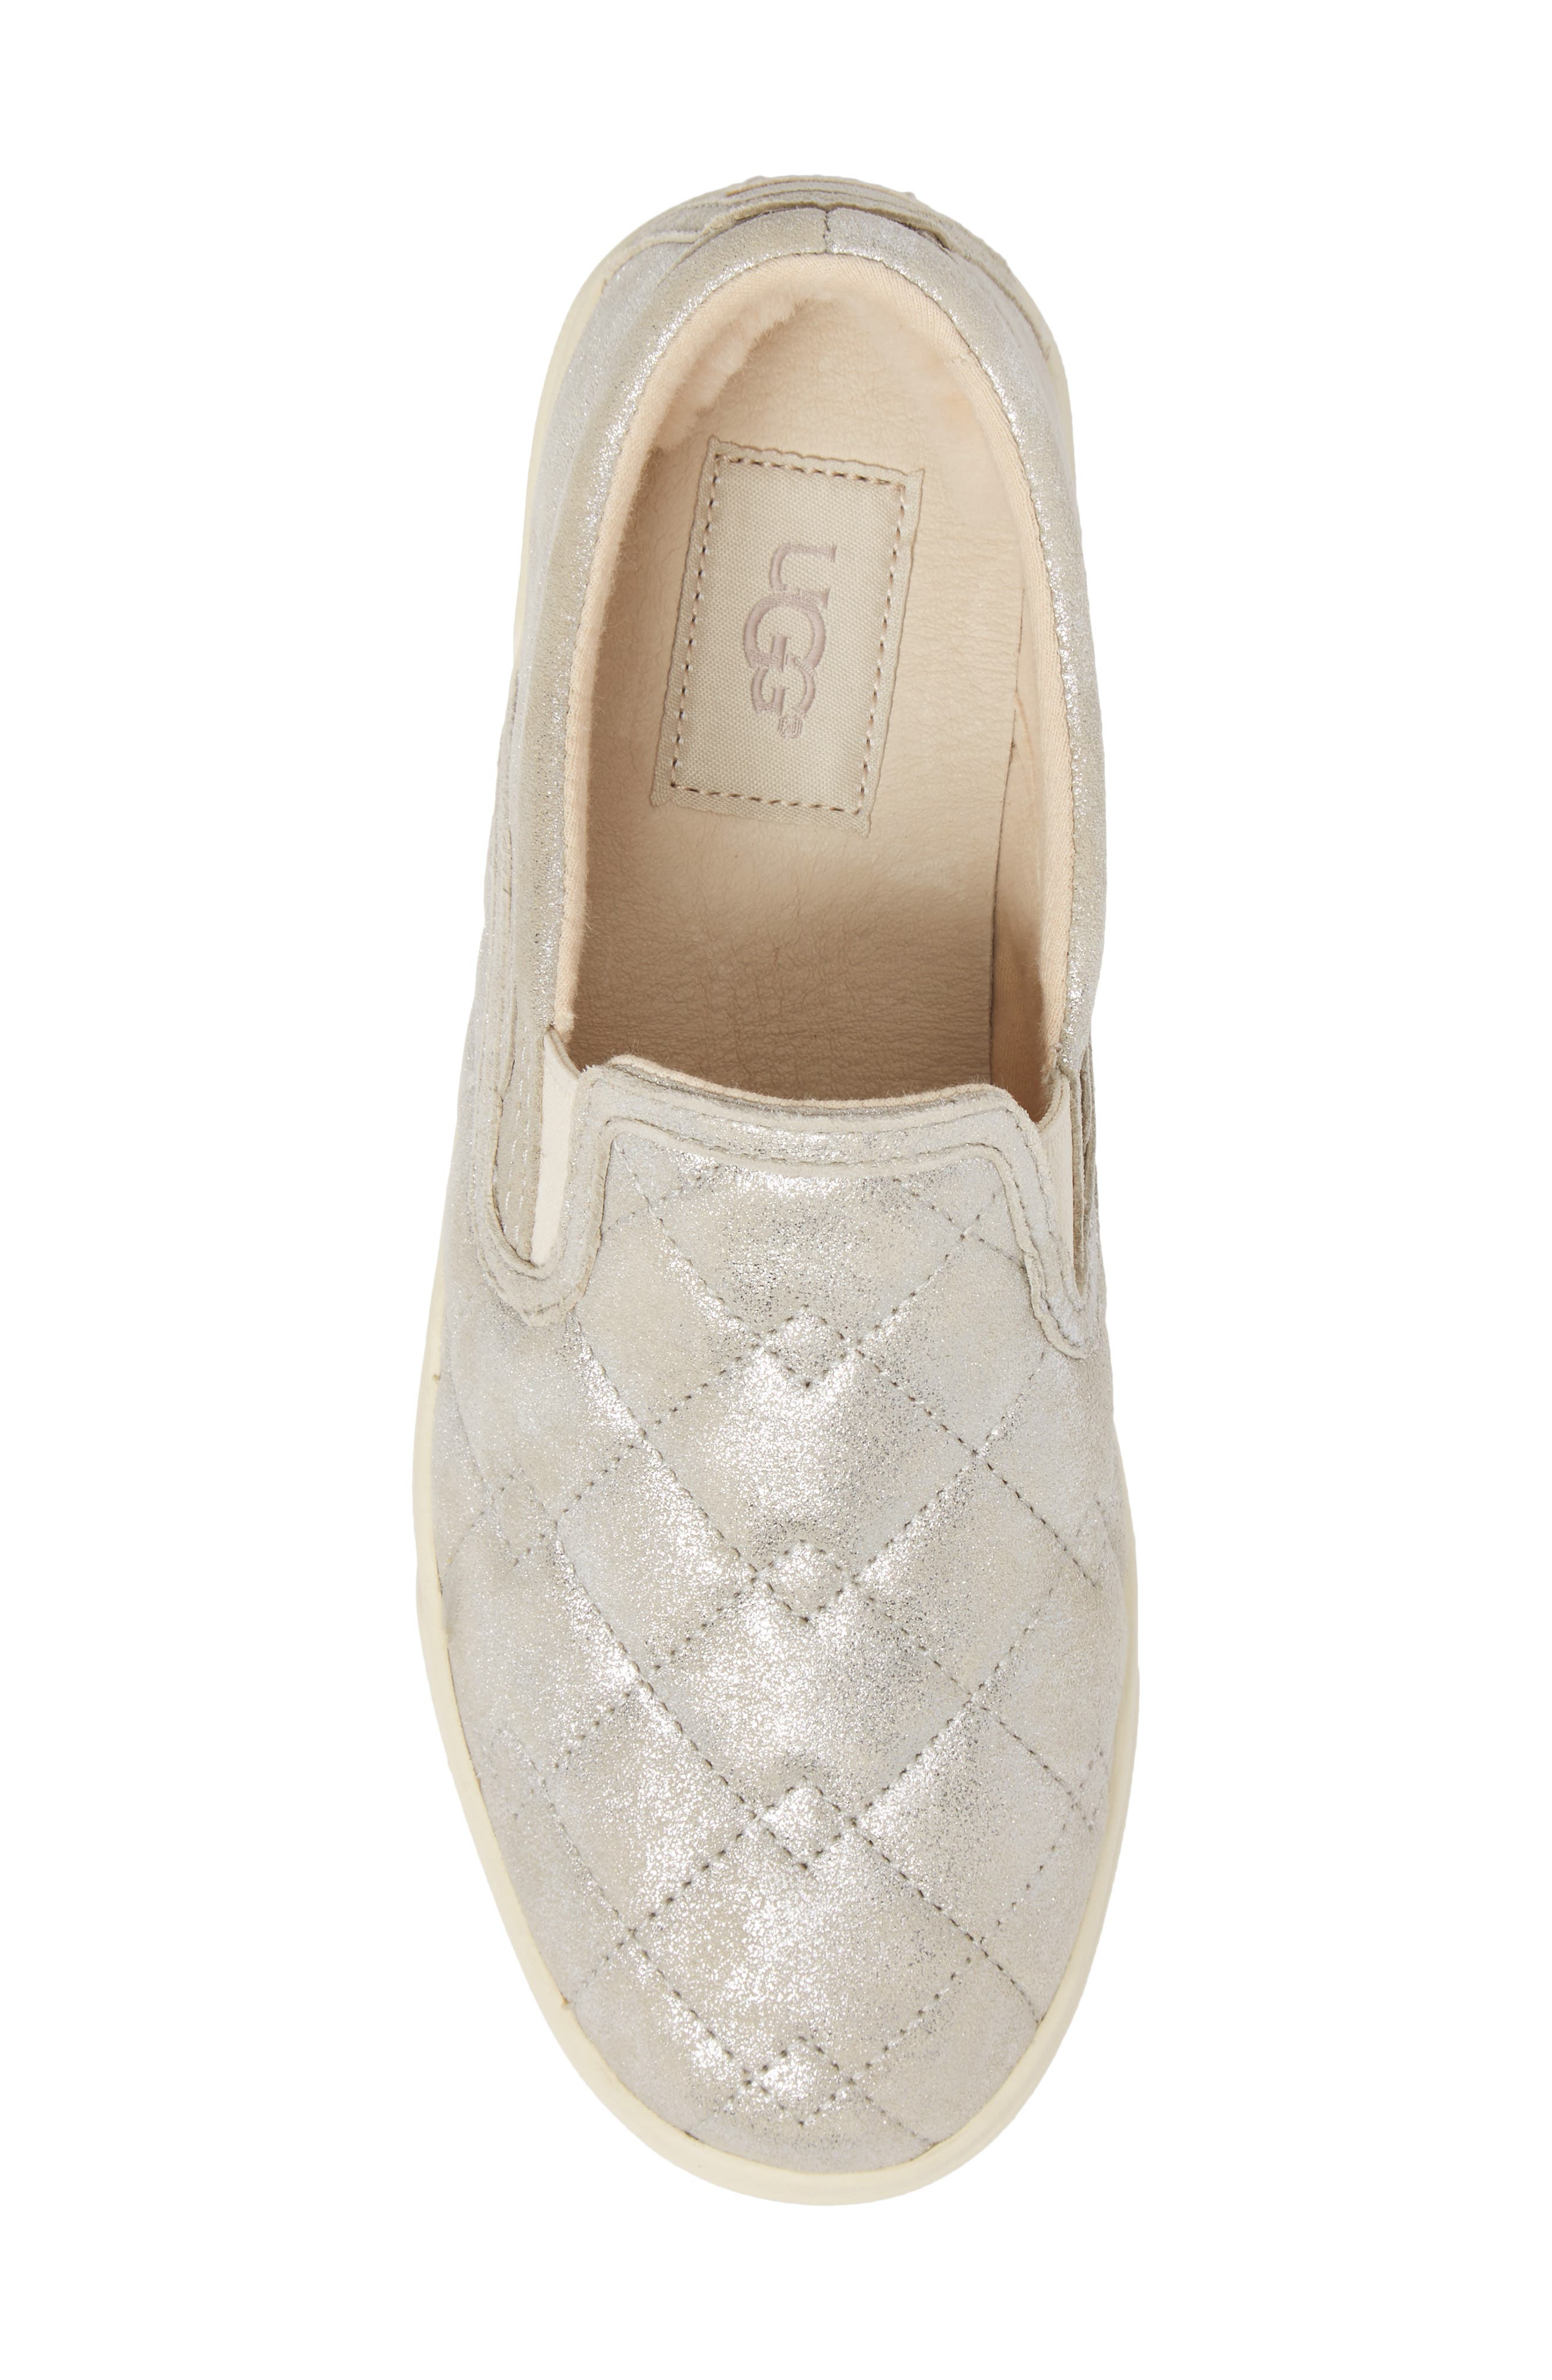 Fierce Stardust Quilted Slip-On Sneaker,                             Alternate thumbnail 5, color,                             040